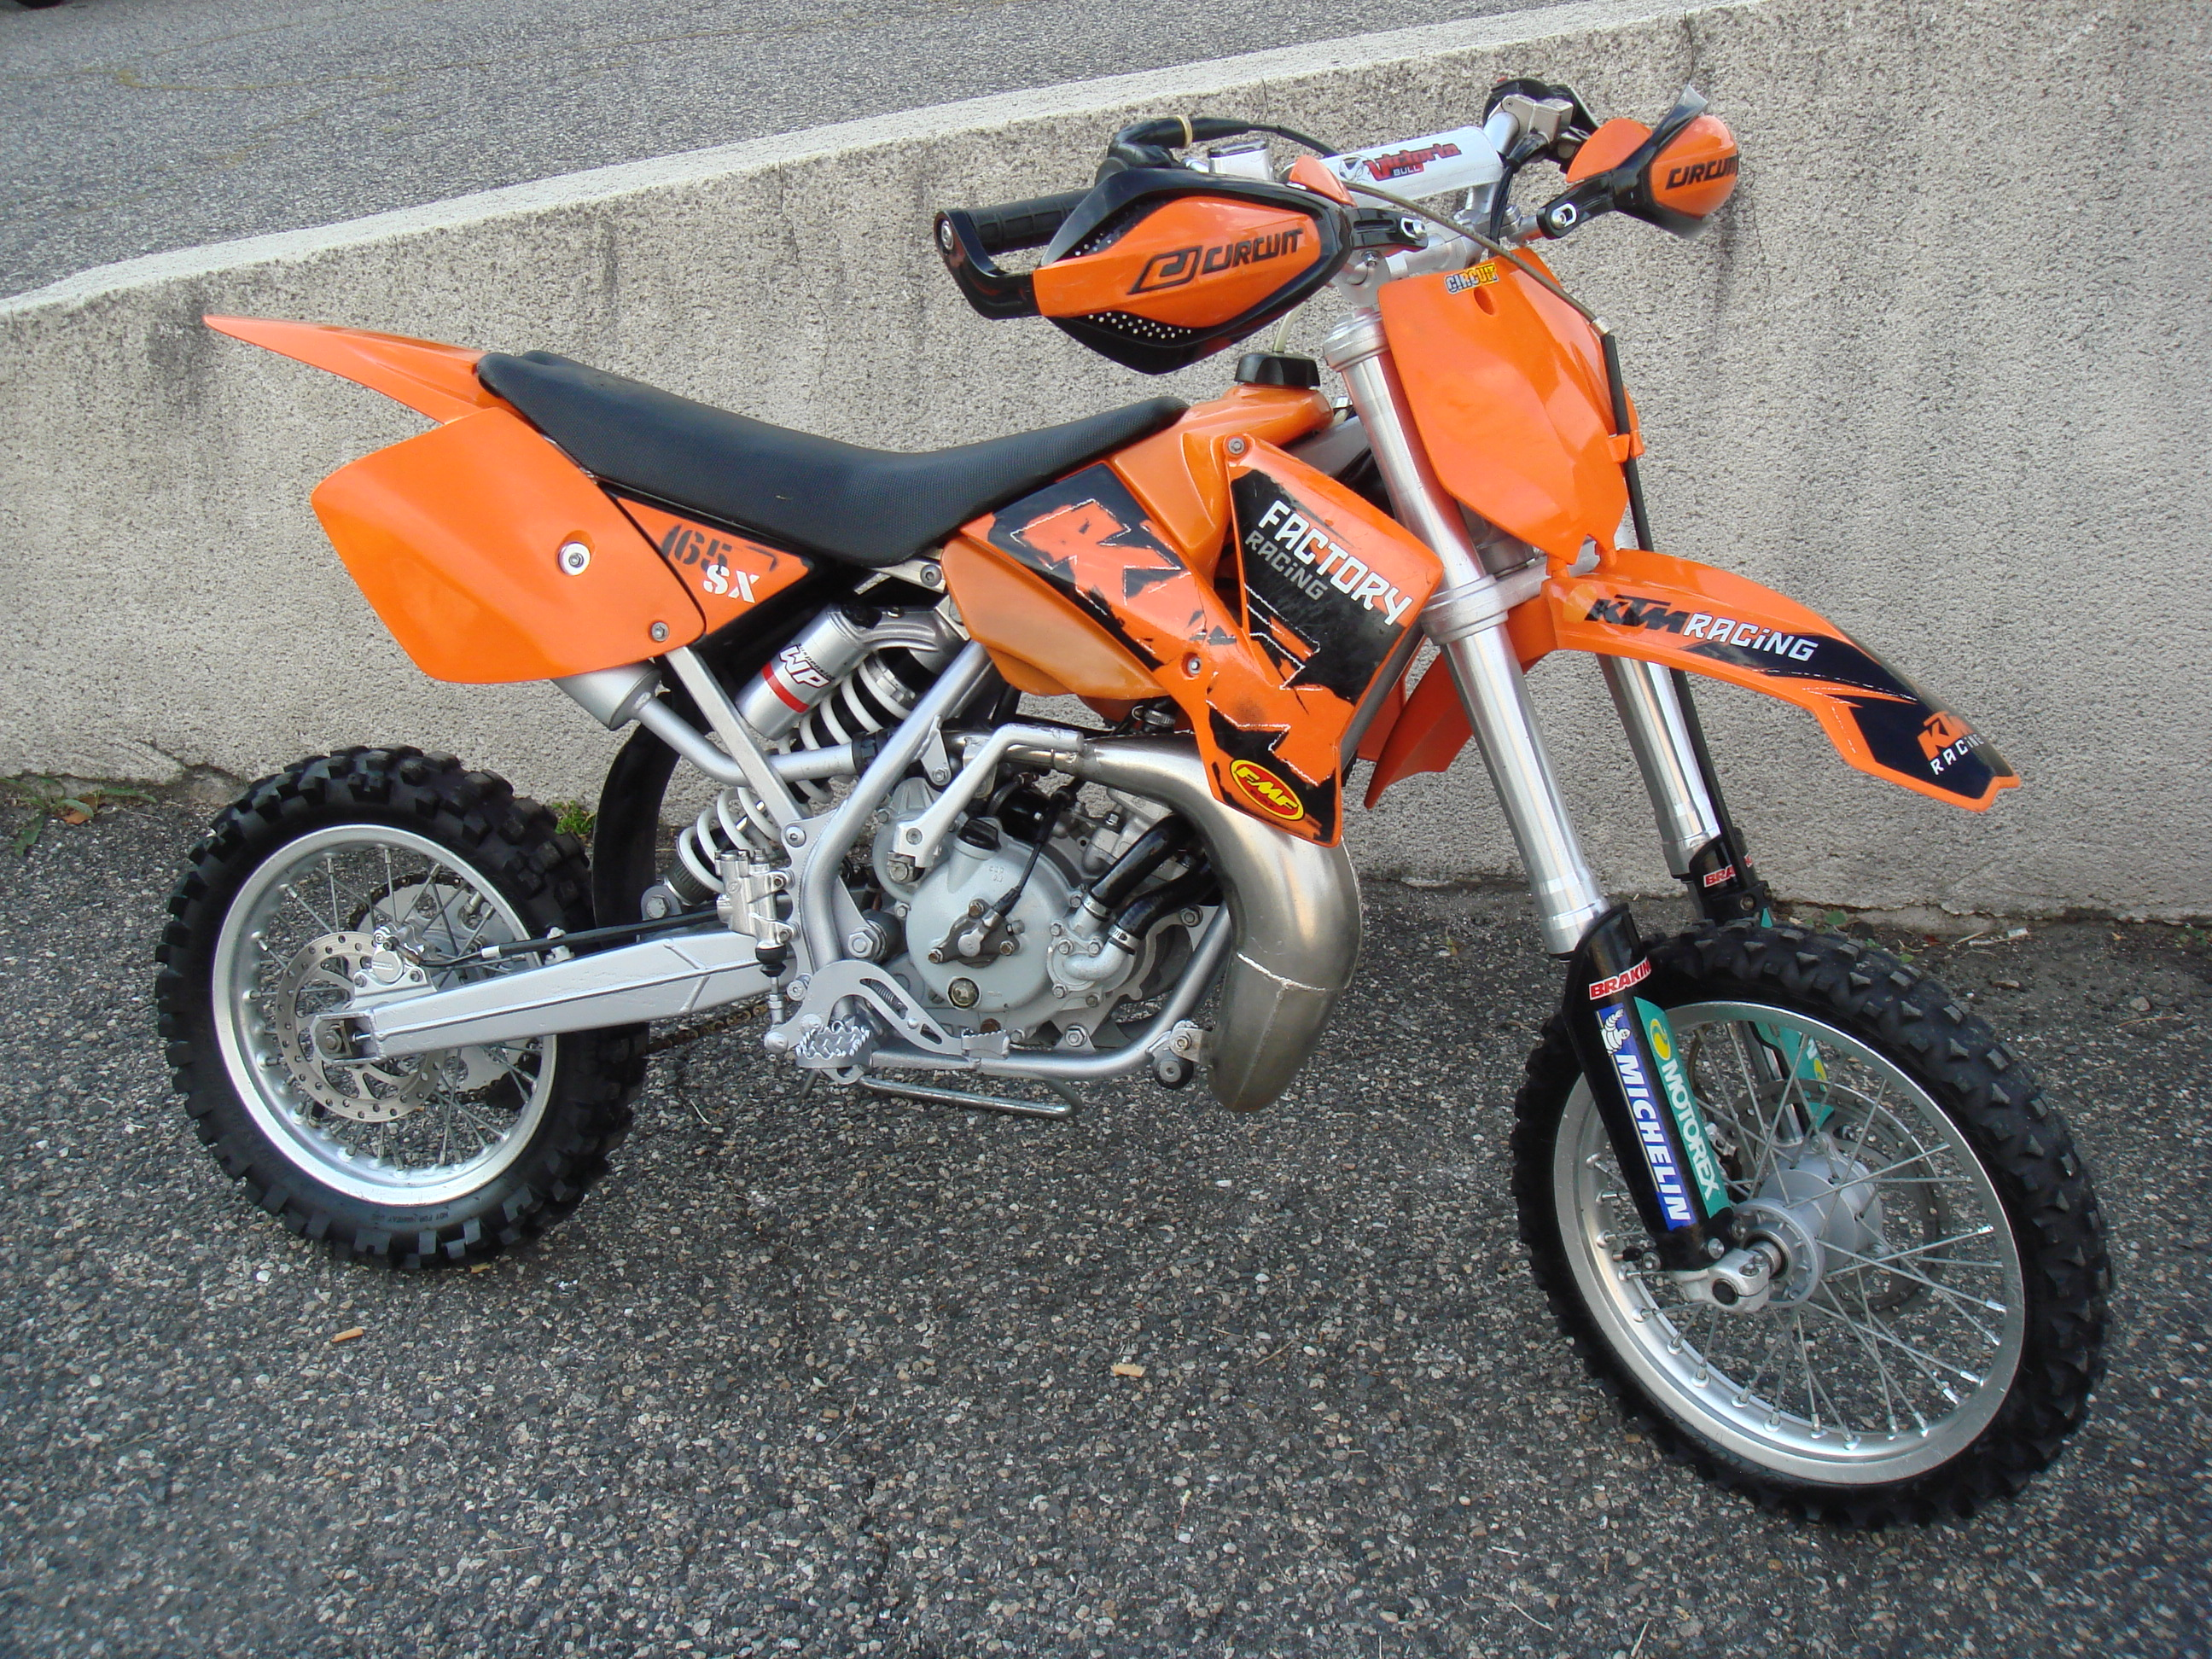 Ktm 65 Sx Wiring Diagram Schematic Diagrams 2004 Pics Specs And Information Onlymotorbikes Com 250